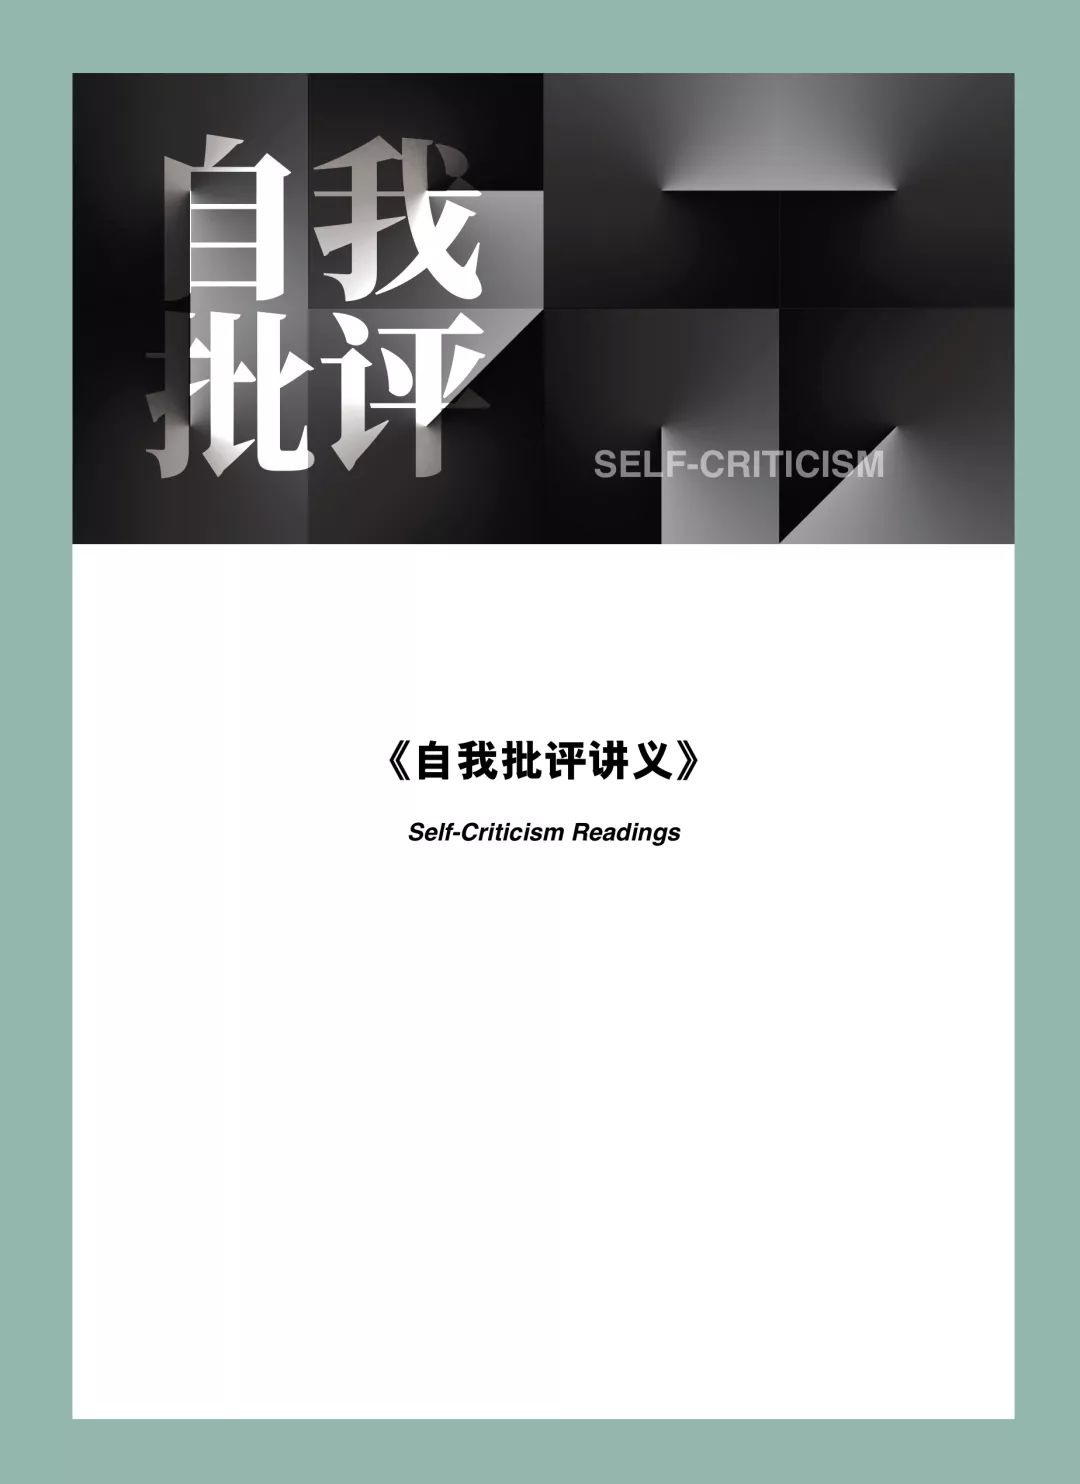 Self-Criticism Readings     Edited by Carol Yinghua Lu, Luo Xiaoming and Su Wei   This is a readings of the exhibition  Self-Criticism  (2017.5.27-2017.9.17) held at IOAM. The exhibition brings together artists, curators, and cultural critics, acting concurrently as team, and concerning themselves with the implications of the proposed question, rather than merely explaining around the topic of self-criticism. 5 texts from different historical periods are selected in the book, enlightening the necessity of self-criticism in our time.